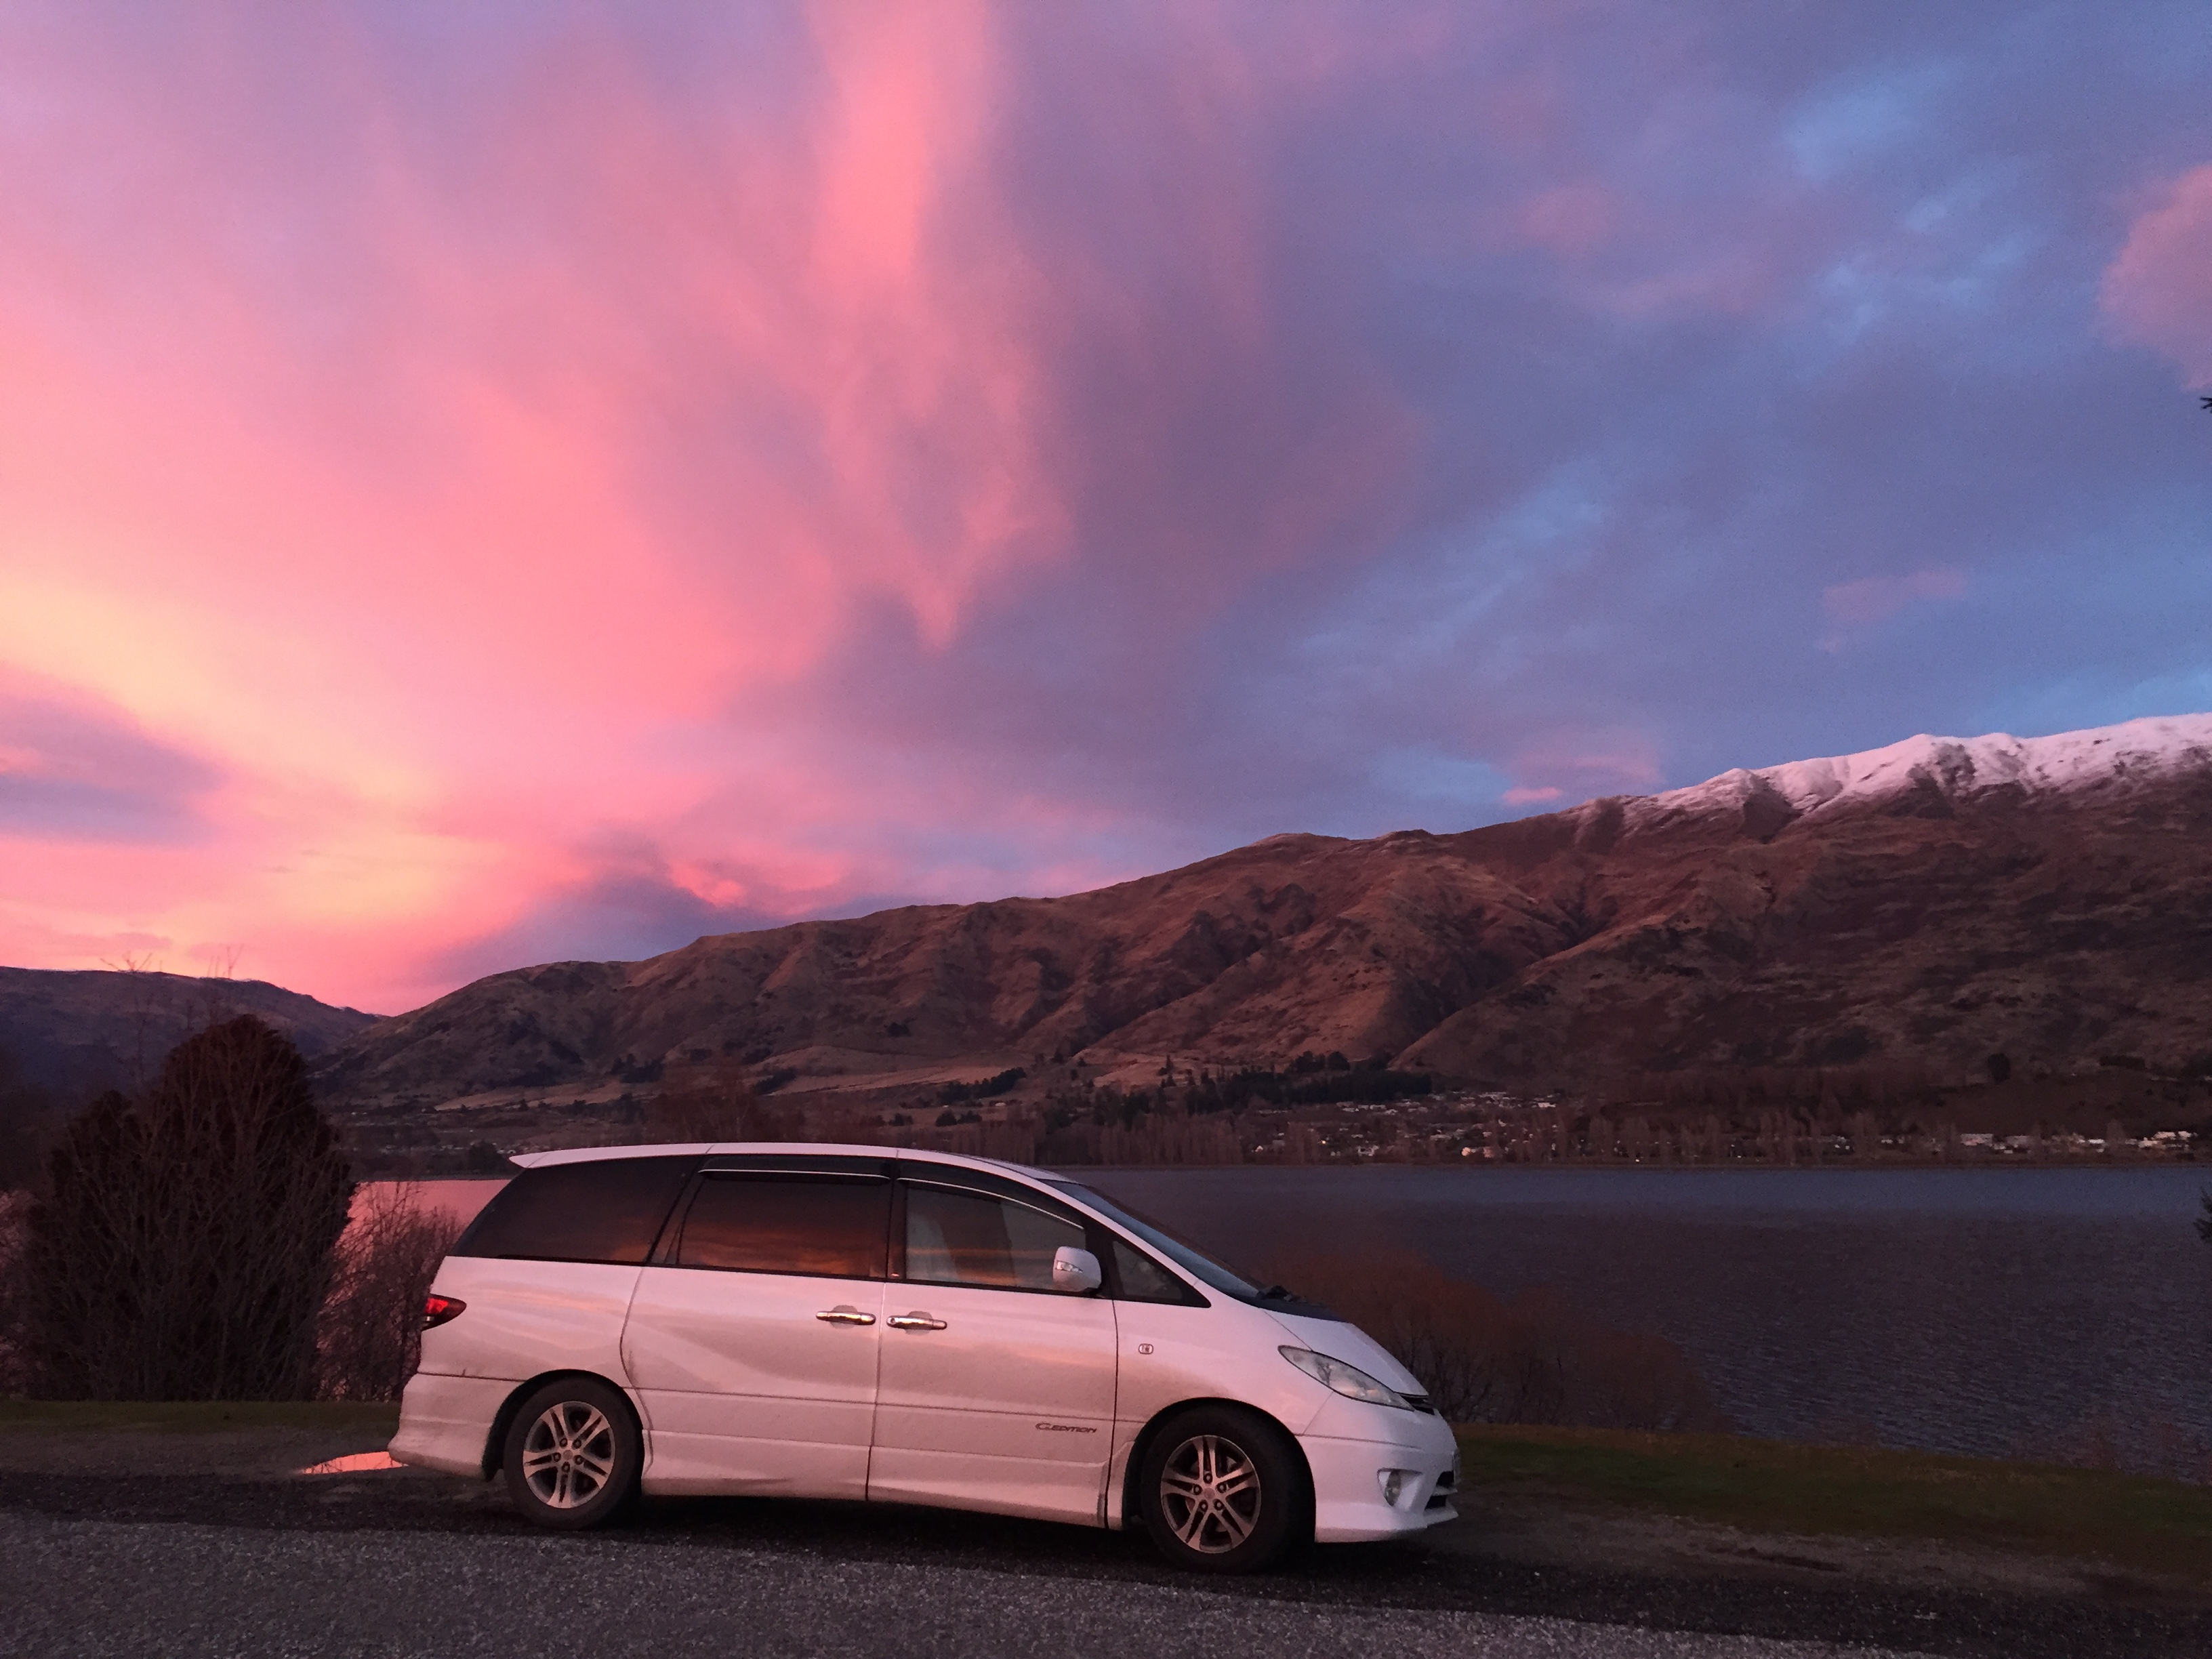 The sunset at Wanaka camp site